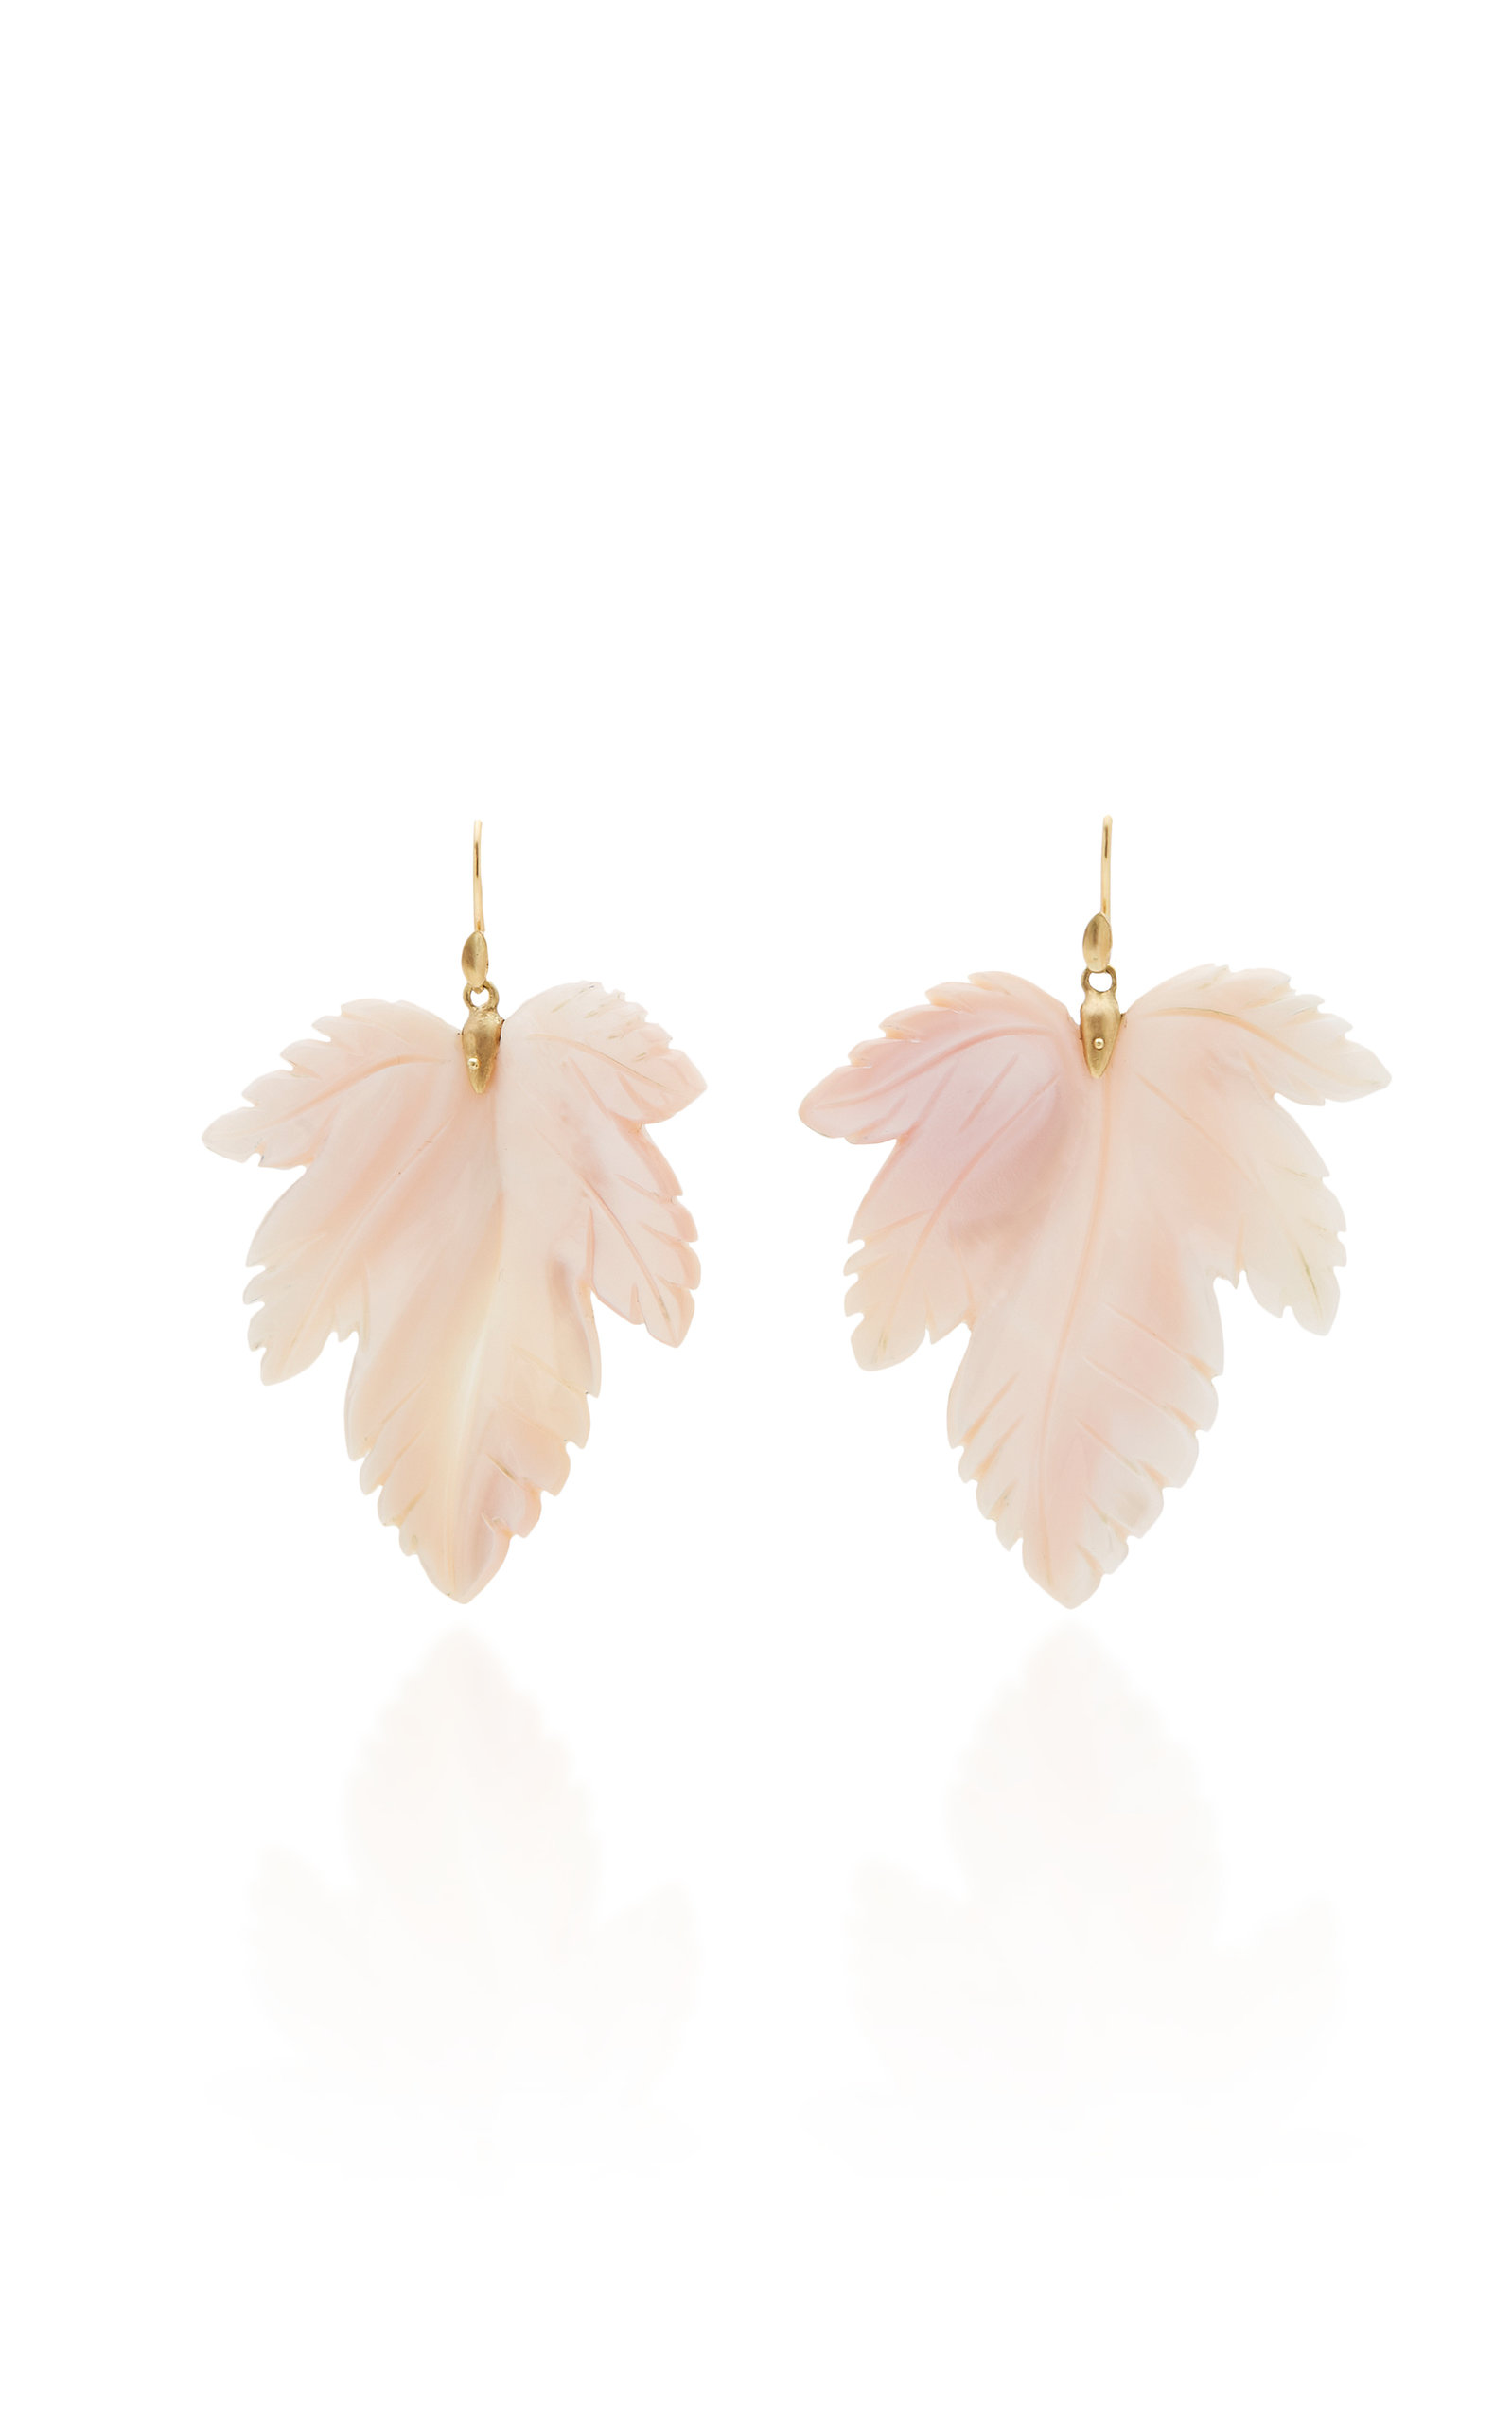 ANNETTE FERDINANDSEN M'O EXCLUSIVE: MOTHER OF PEARL FANCY LEAF EARRINGS